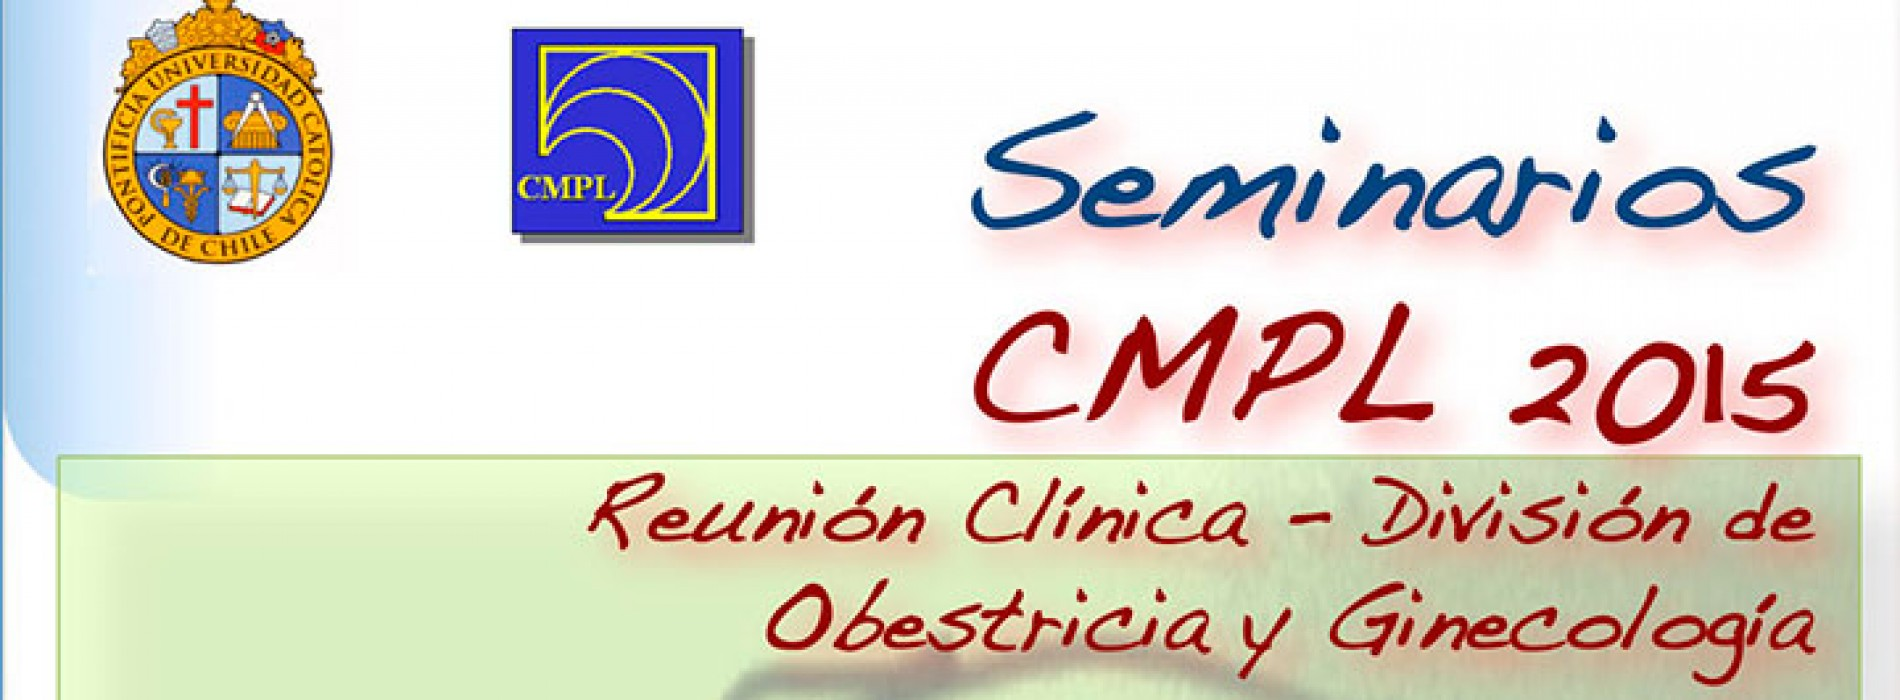 Seminarios CMPL 2015: Approaches to Translational Clinical Research